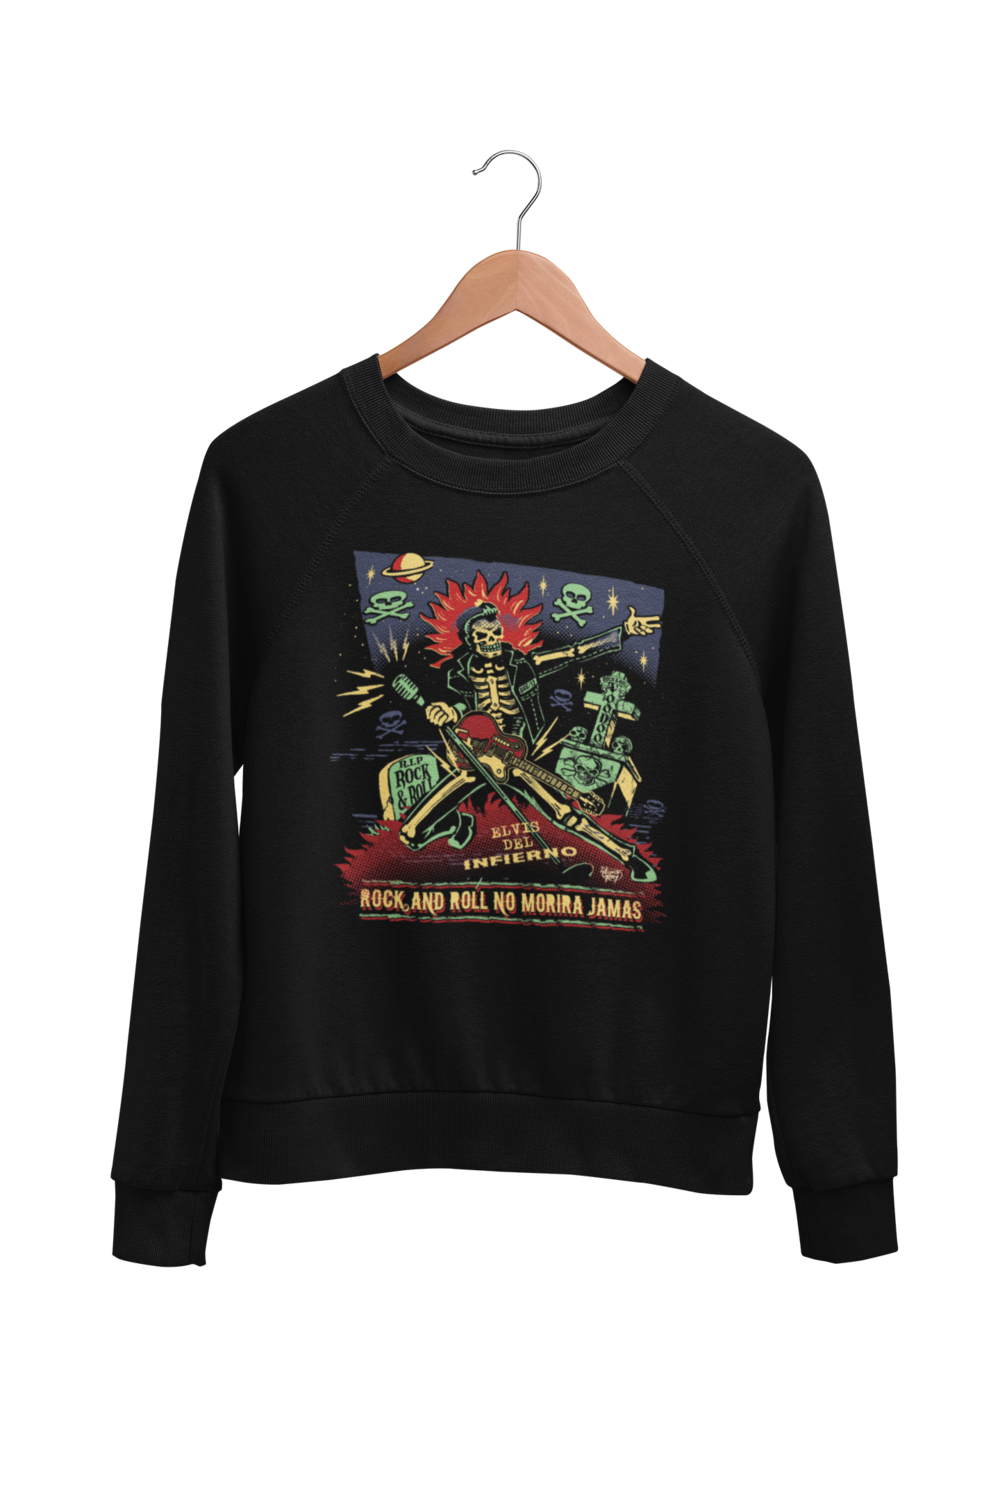 ROCK AND ROLL NO MORIRA JAMAS SWEATSHIRT UNISEX by VINCE RAY